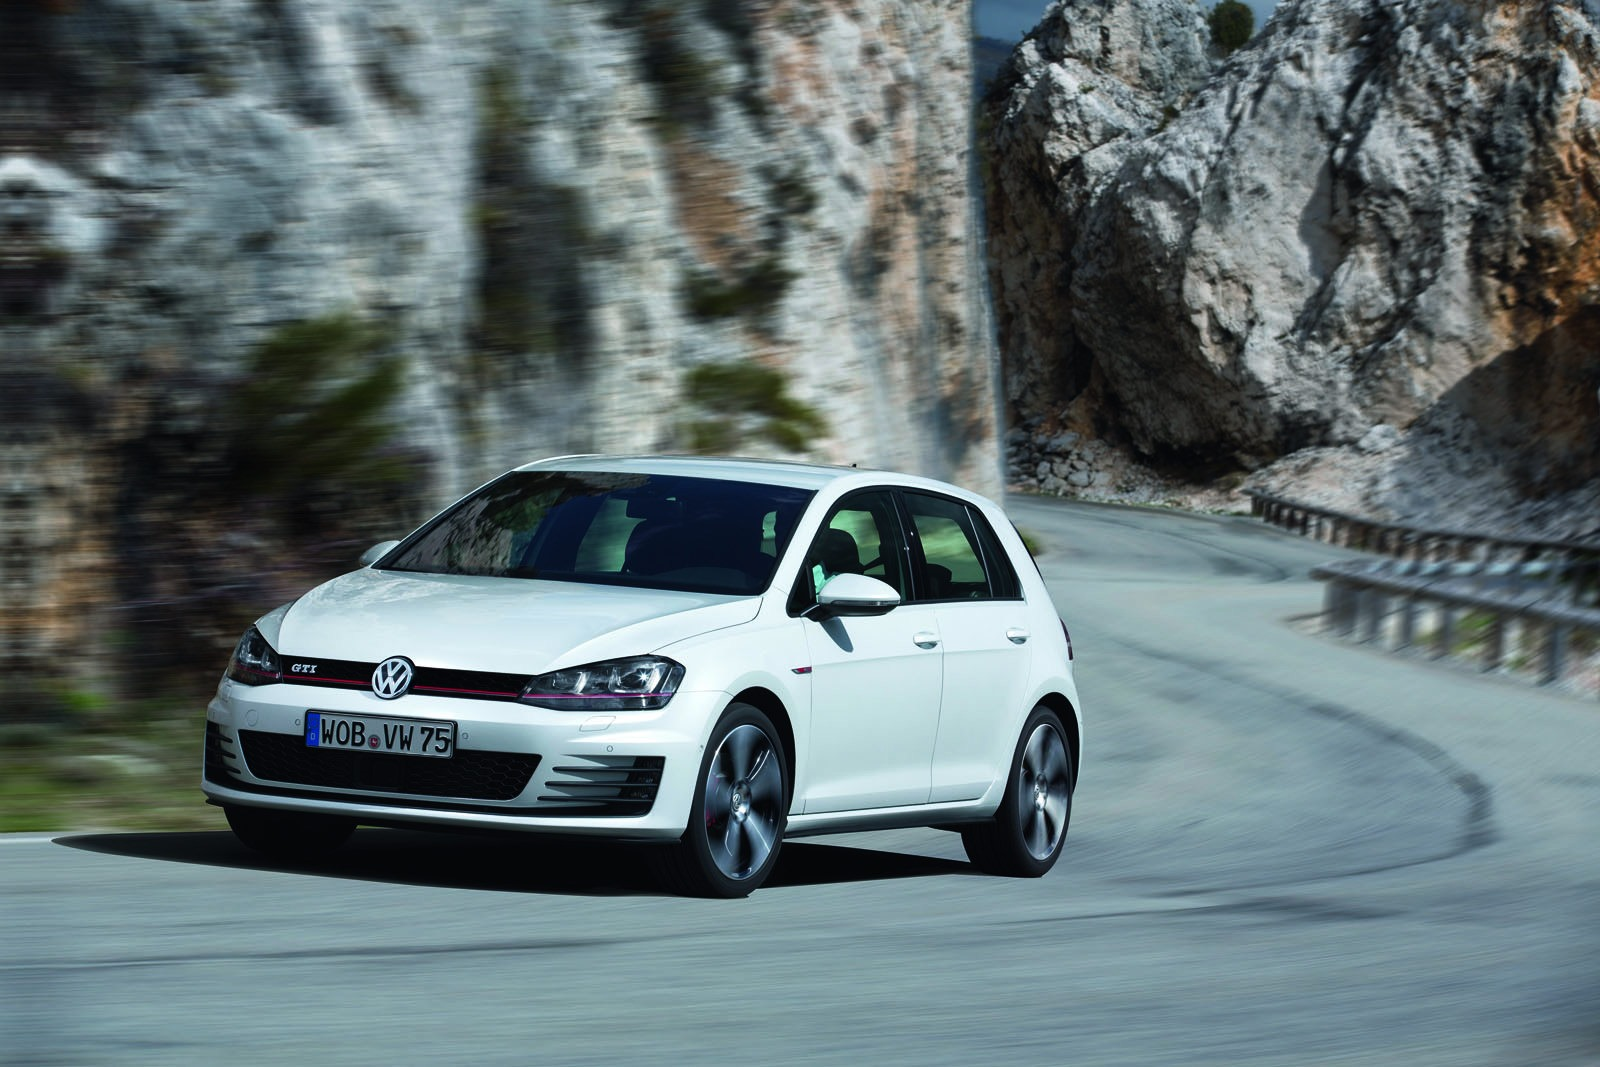 2013 Volkswagen Golf Gti New Photos Released Autoevolution